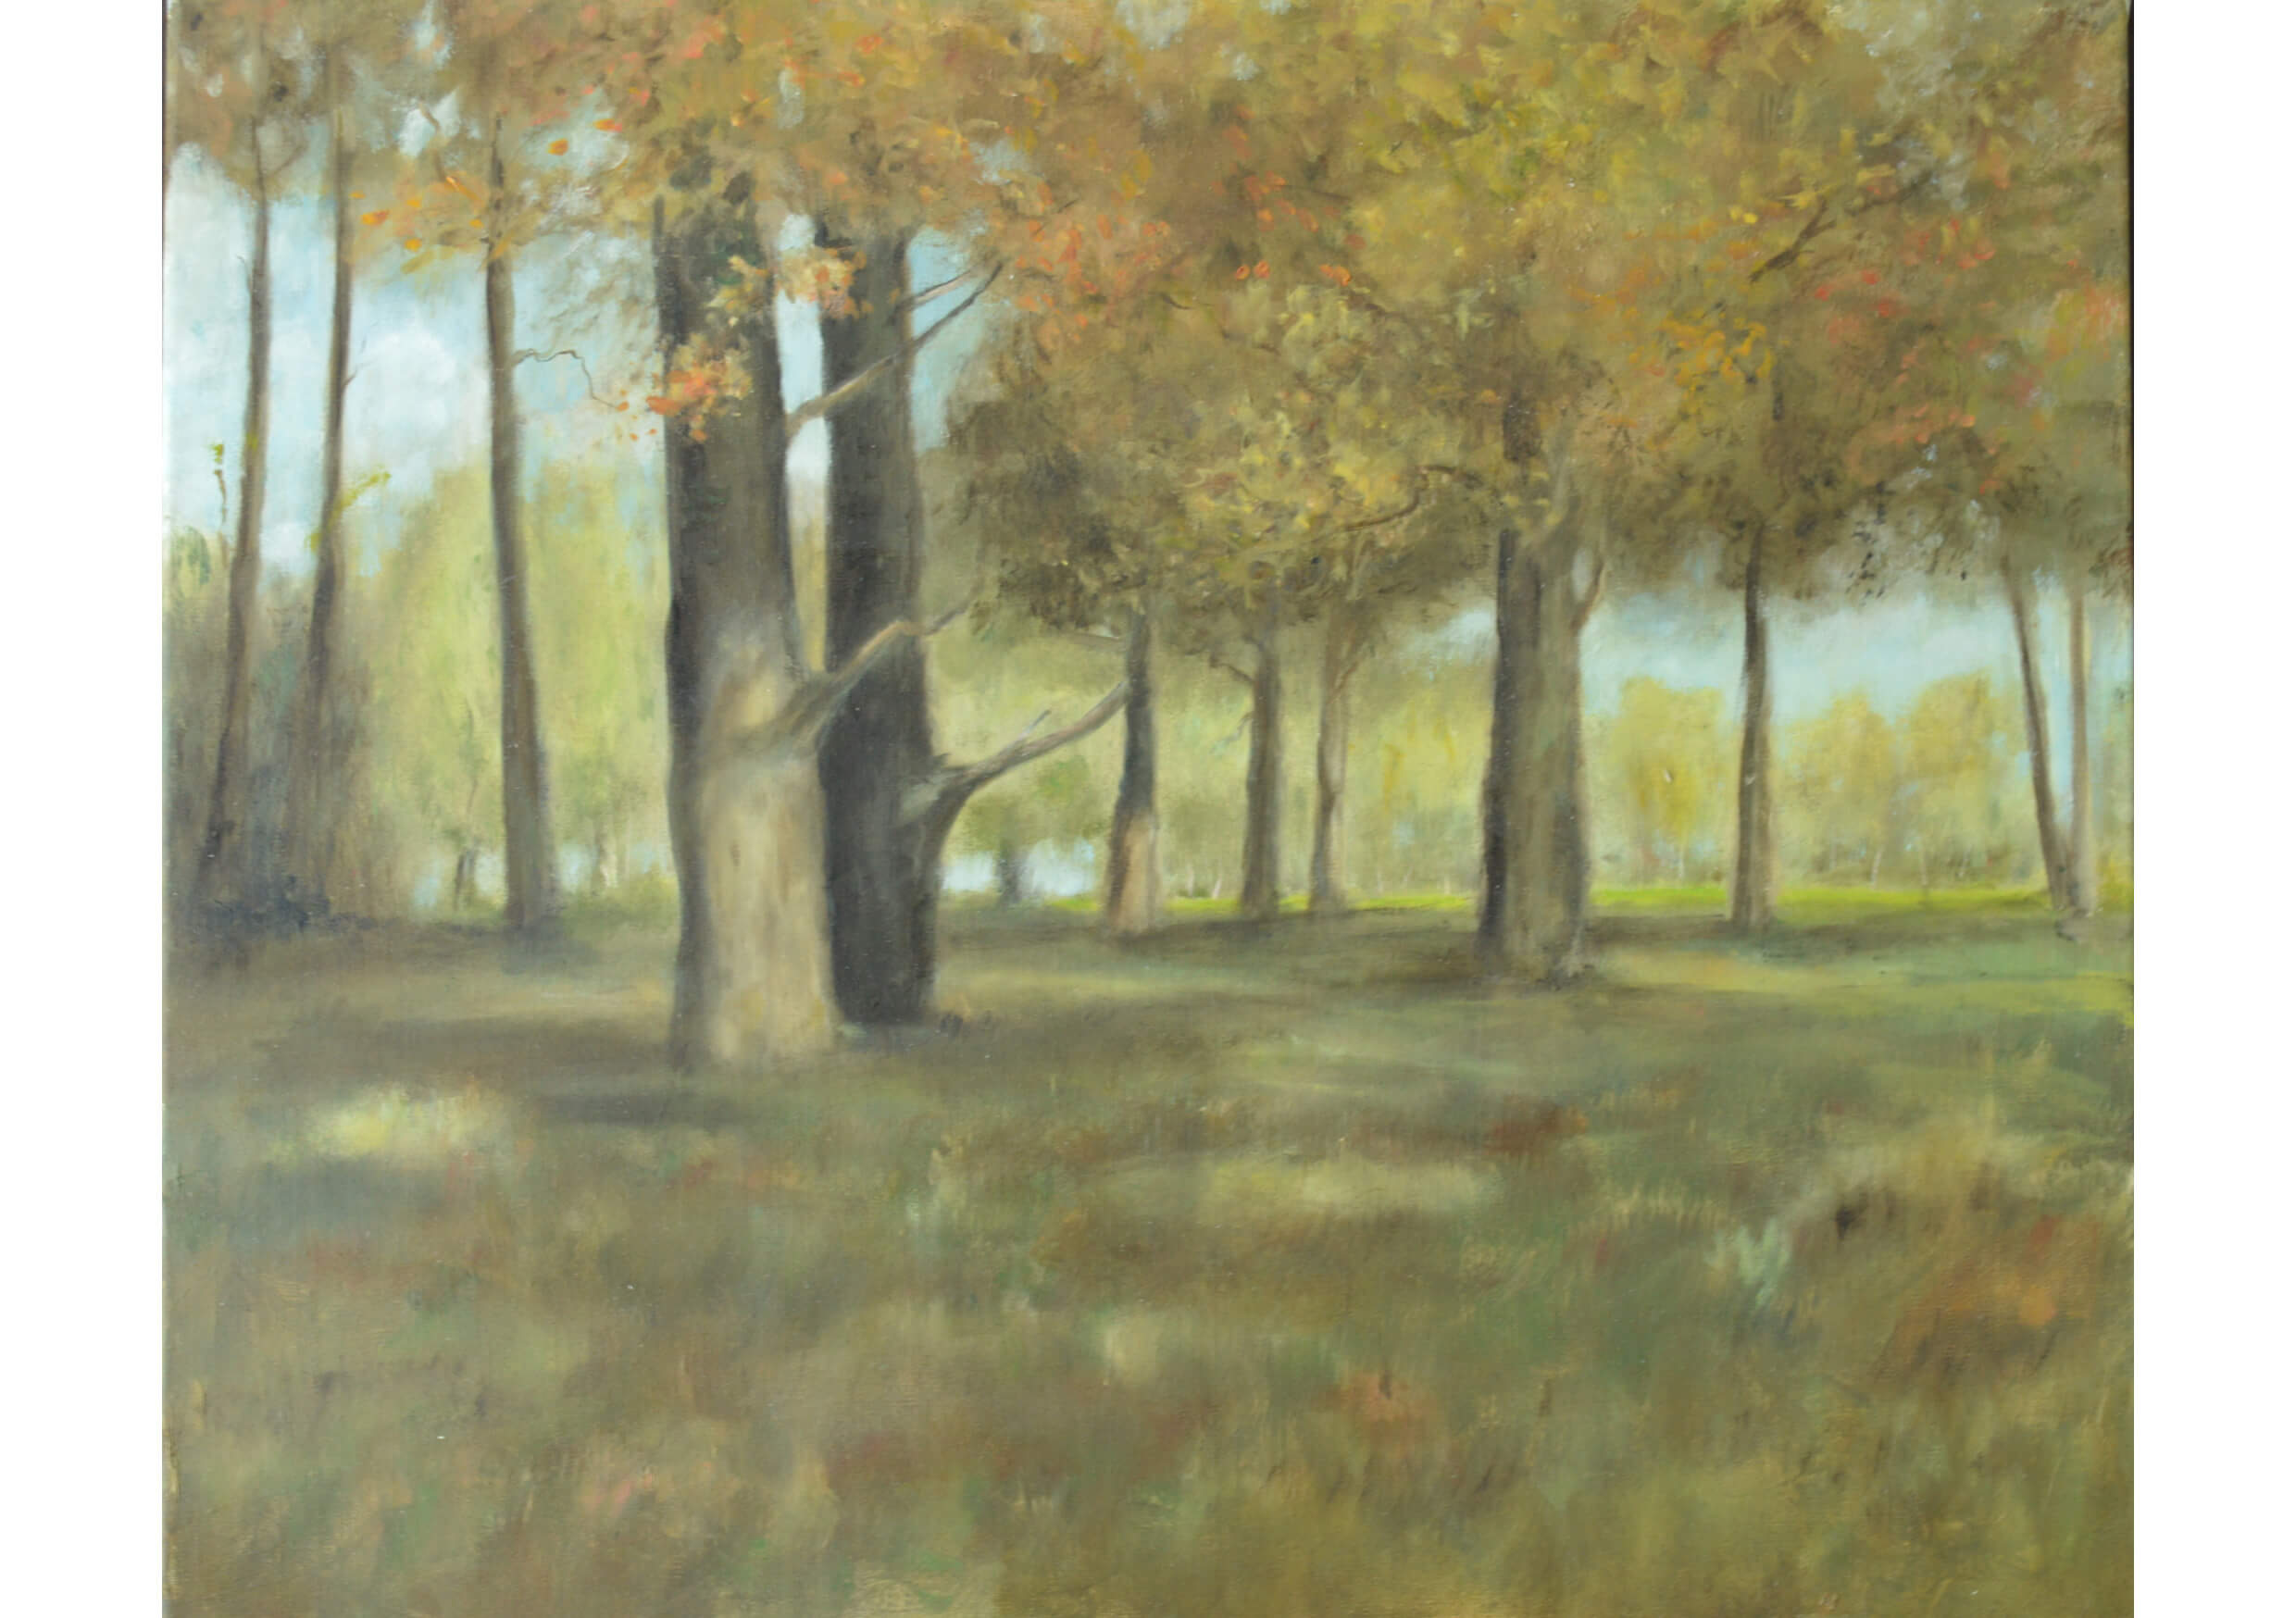 The Trees, Oil on canvas, 46 x 55 cm